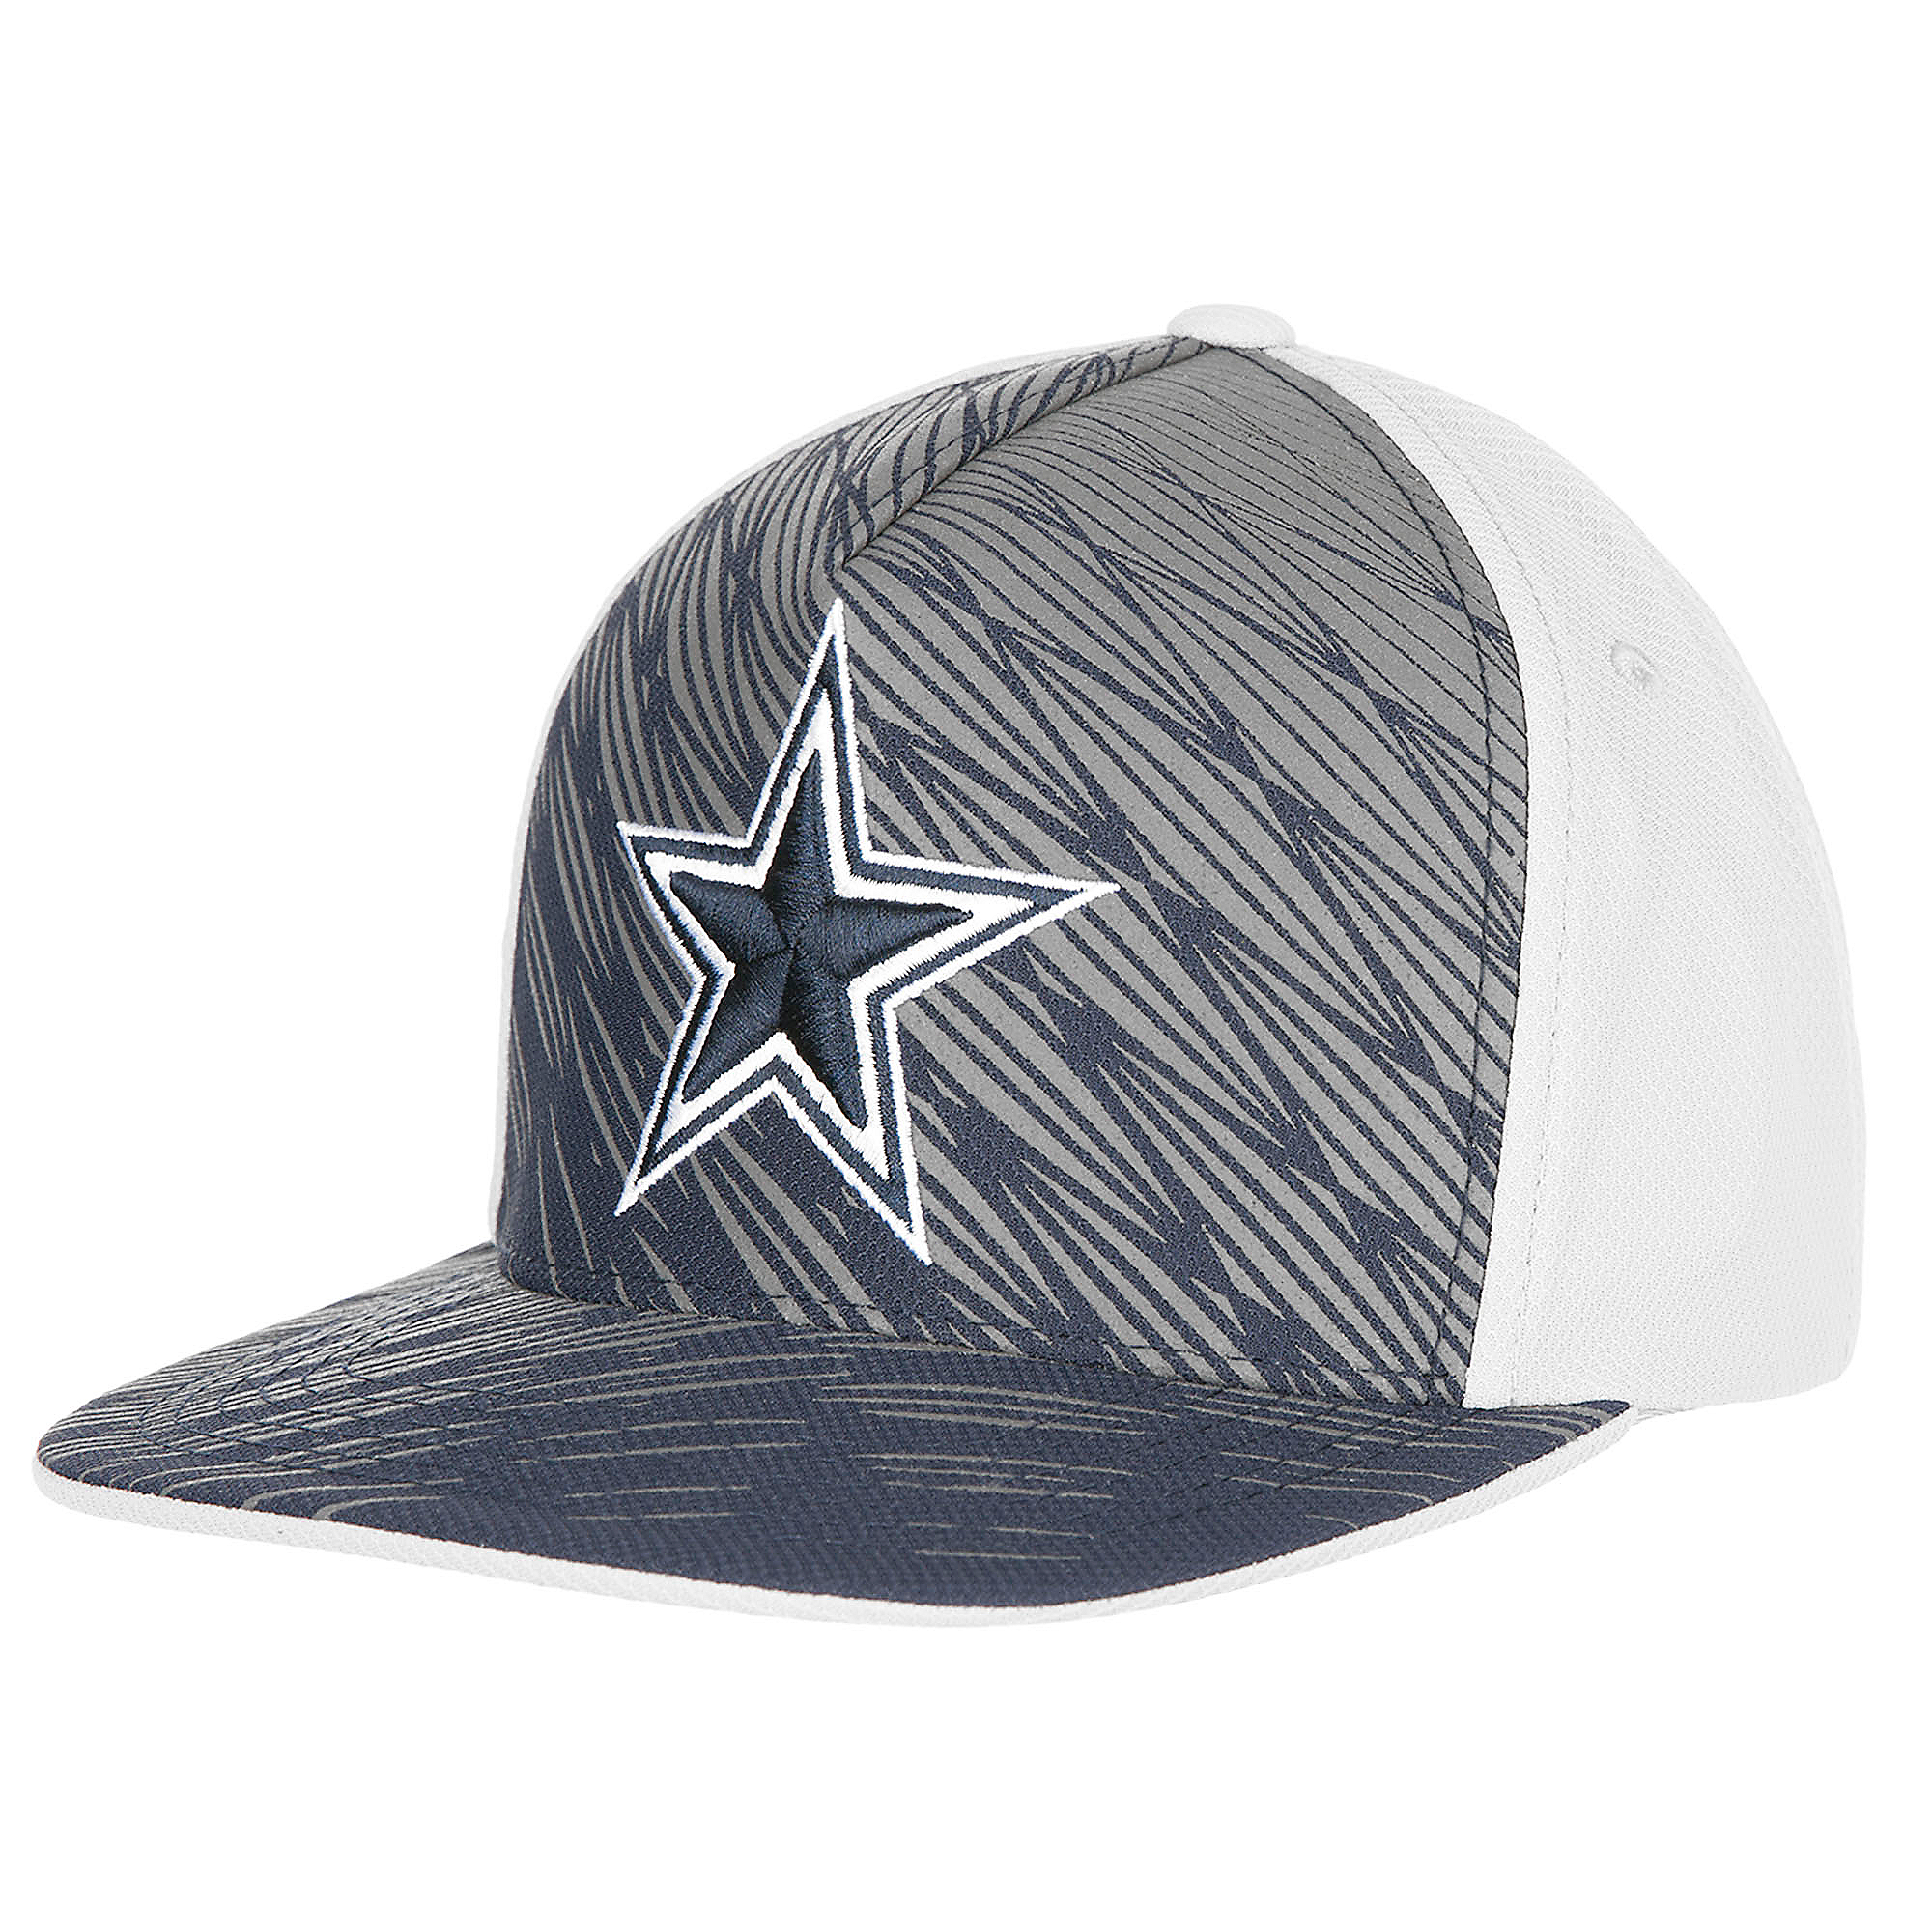 Dallas Cowboys Peckoe Hat